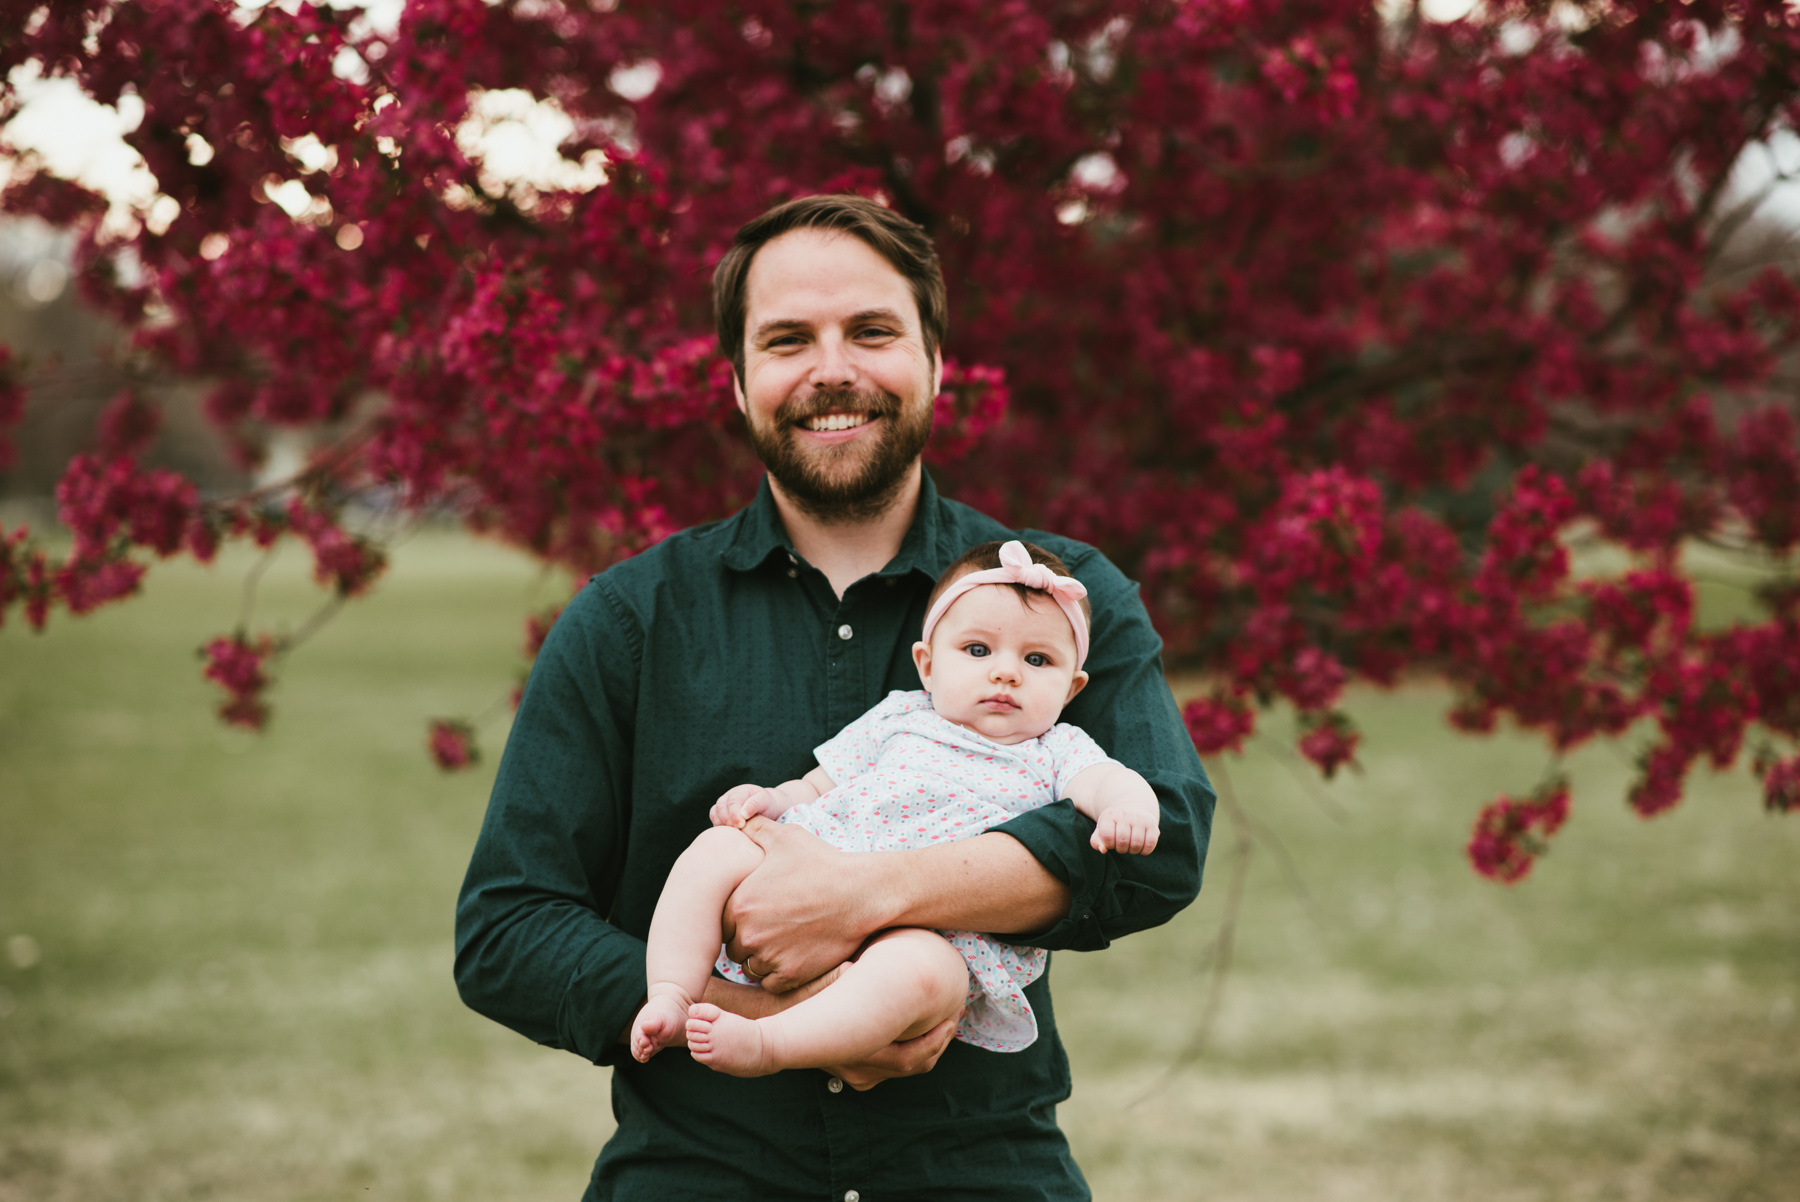 This is my husband Woody, and our daughter Luna, at Sloan's Lake on the first day of spring. It was a beautiful day and we decided to pose in front of these trees that still had some flowers. Luna was 4 months old.